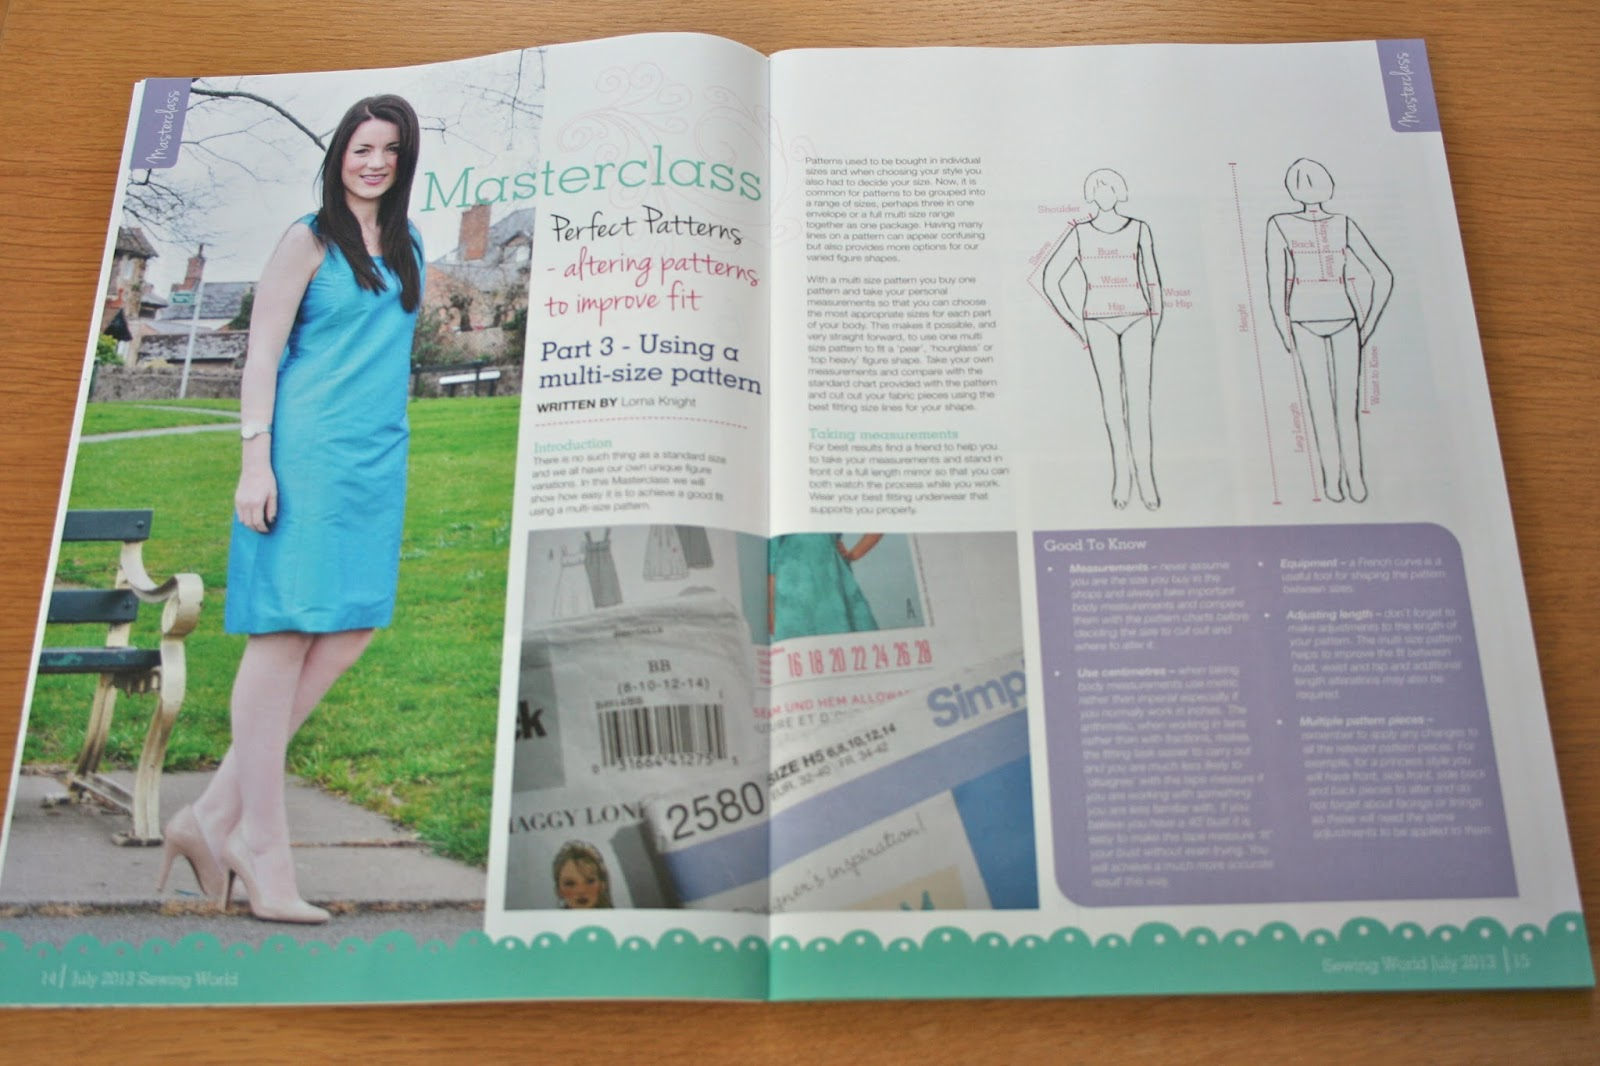 Evajeanie and the sewing machiney review sewing world magazine this not tricky or in the least bit scarey section is exactly what the tags on the top of the page claim it to be a masterclass jeuxipadfo Choice Image